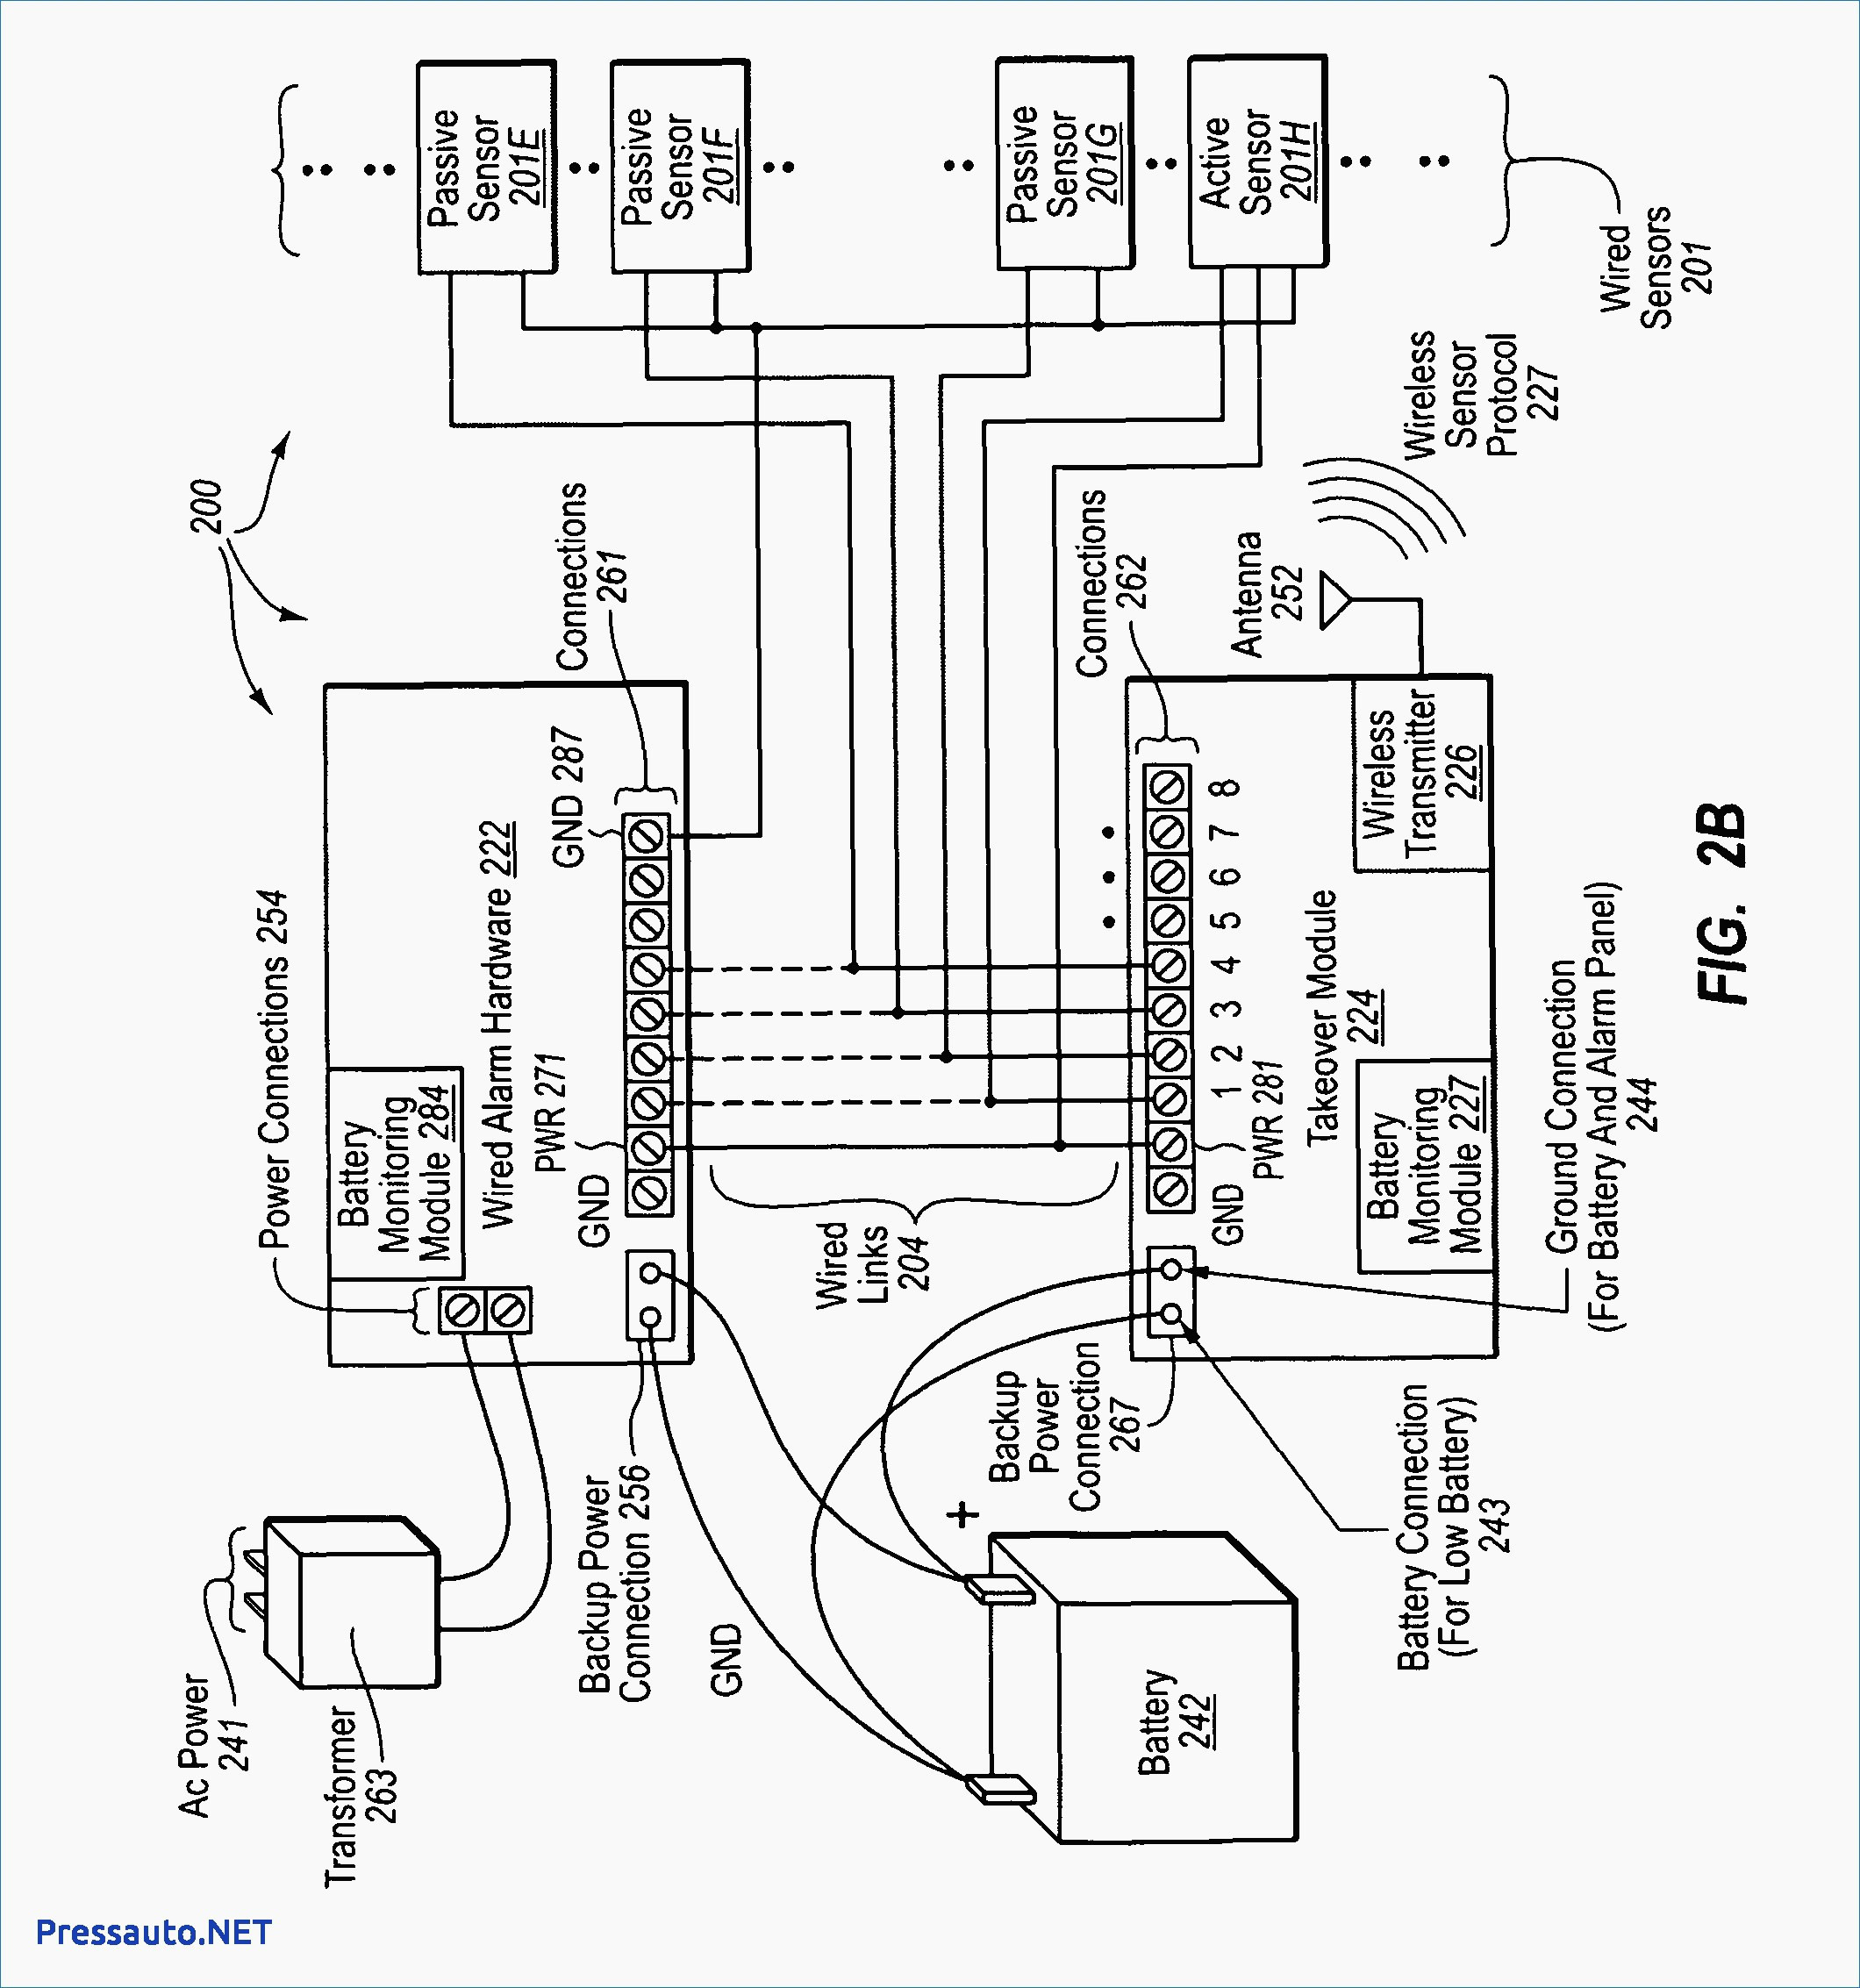 240 to 24 volt transformer wiring diagram 1993 chevrolet c1500 database midi drawing at getdrawings free for personal use 24v furnace